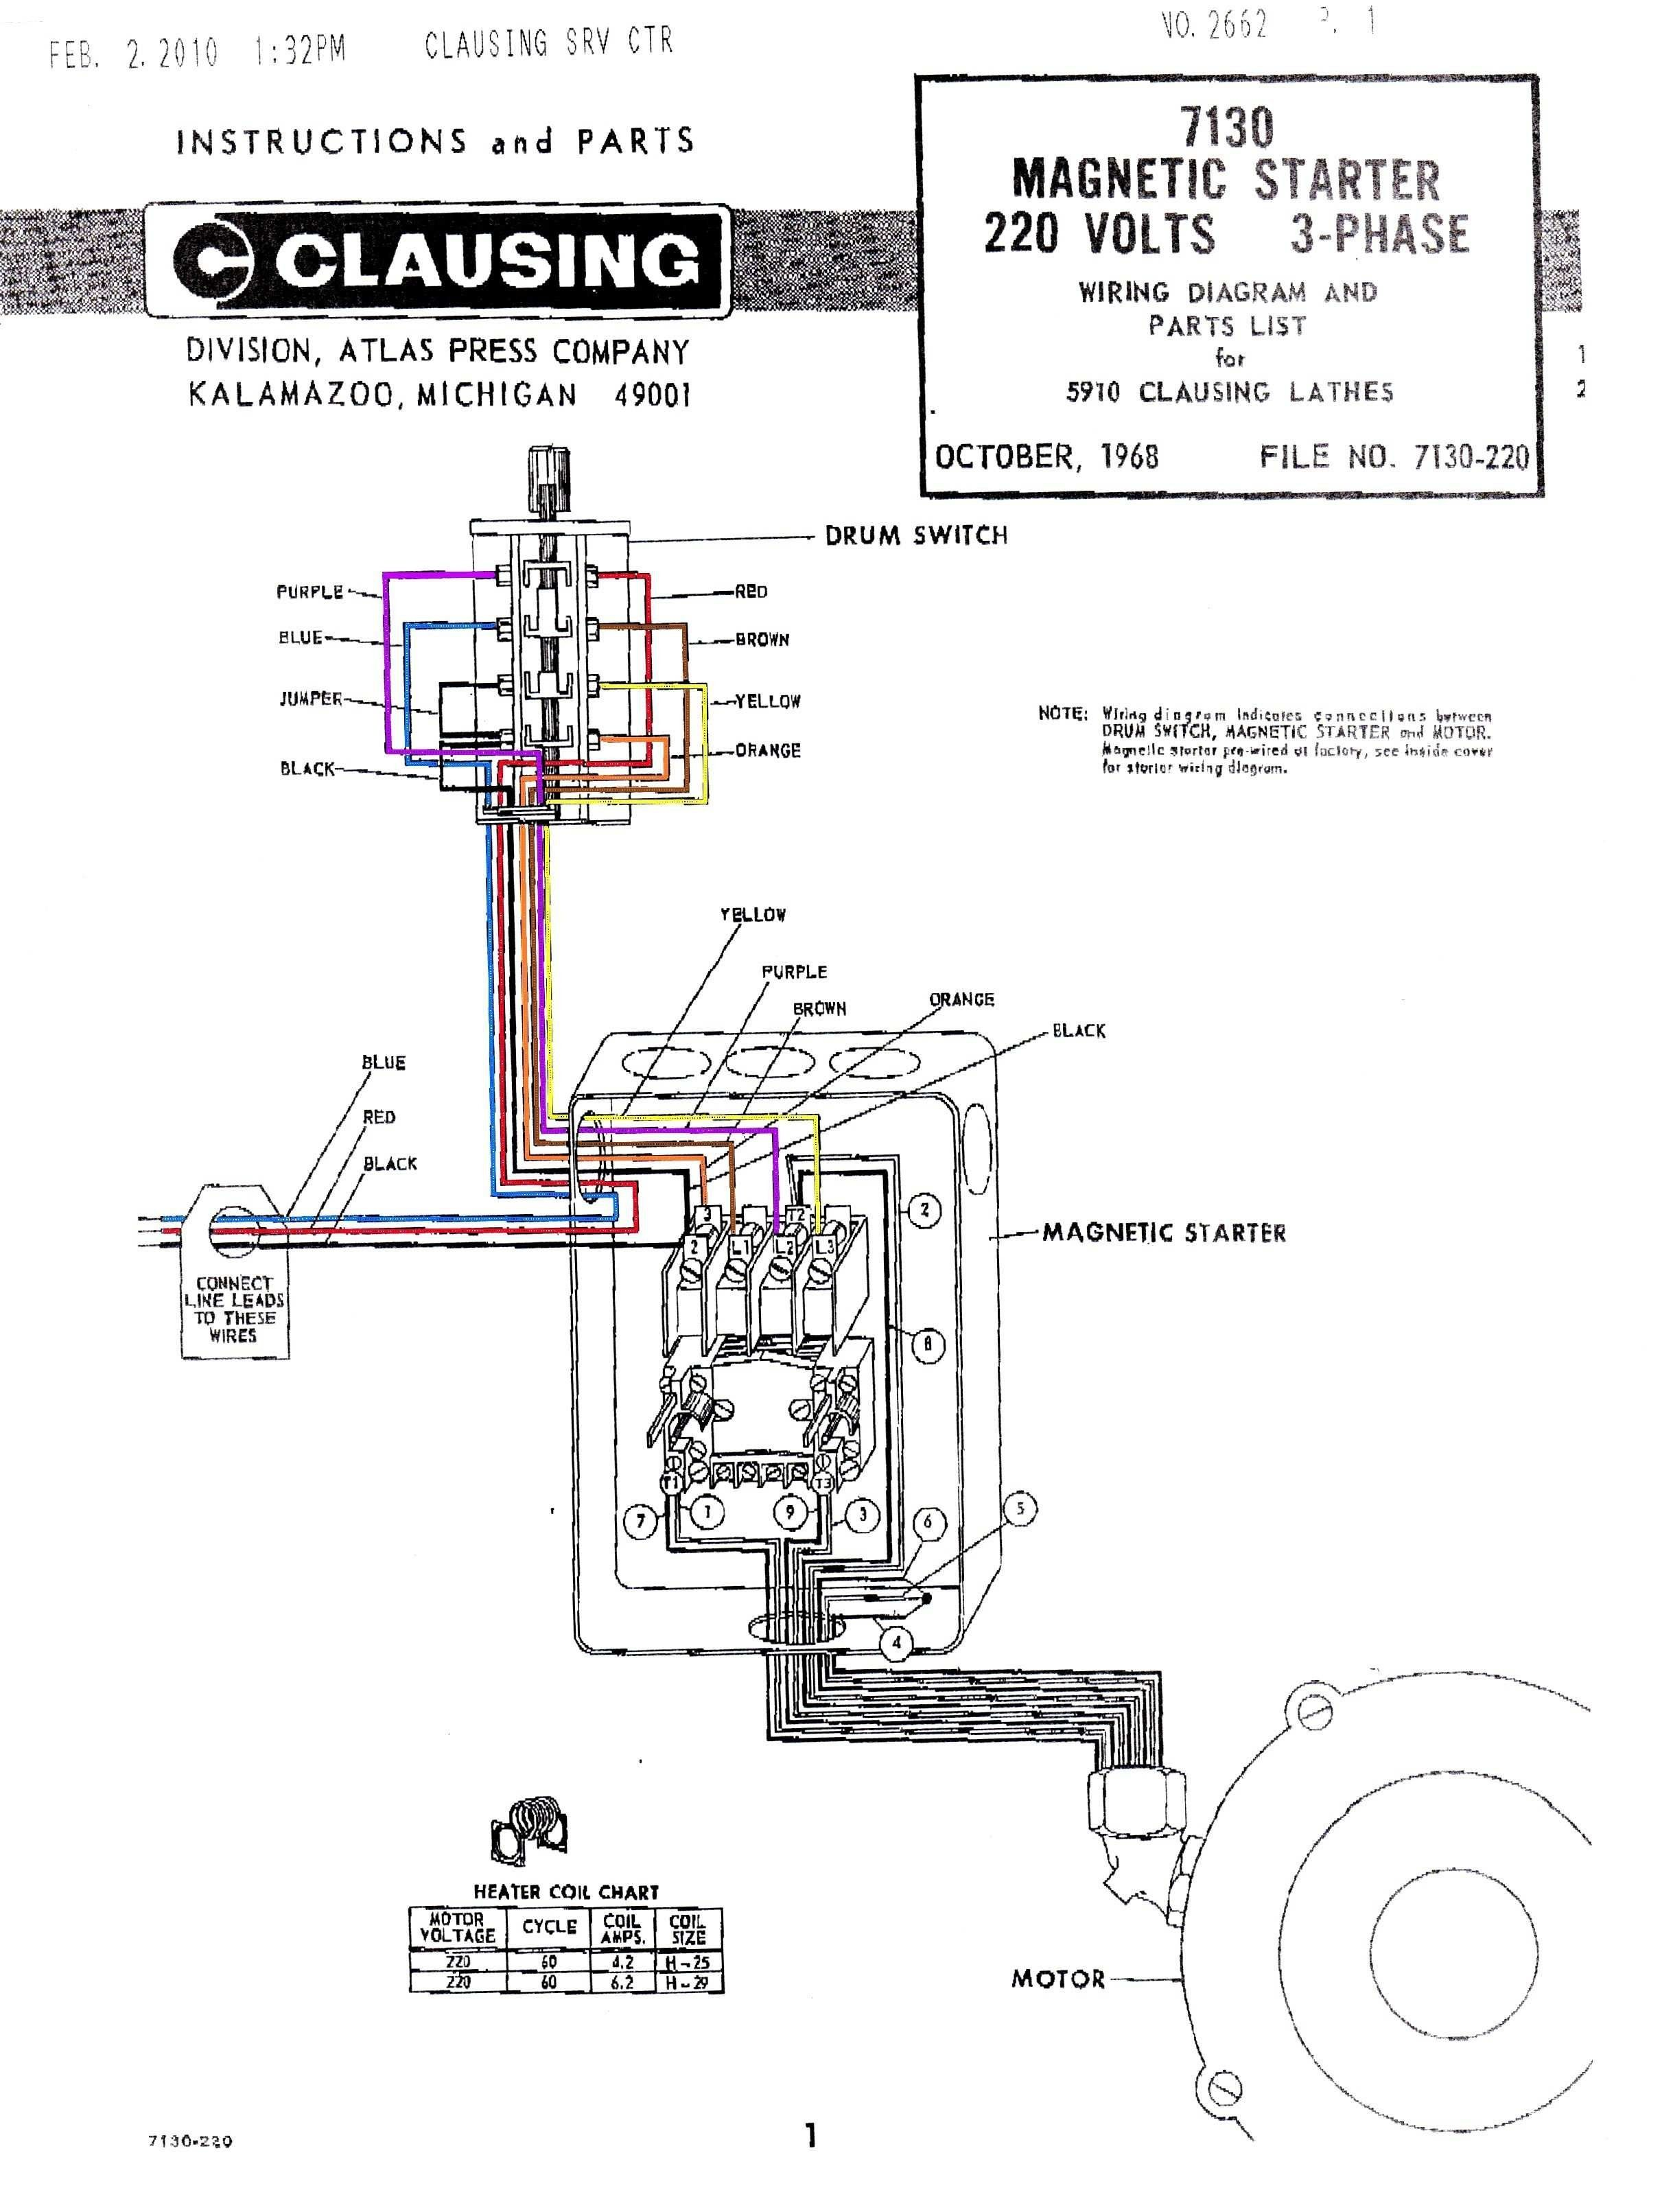 Square D Motor Starter Wiring Diagram Unique Ponent Motor Starter for  Excellent Starter Circuit Diagram - 7459 | Diagram, Wire, Bathroom fan  installationPinterest